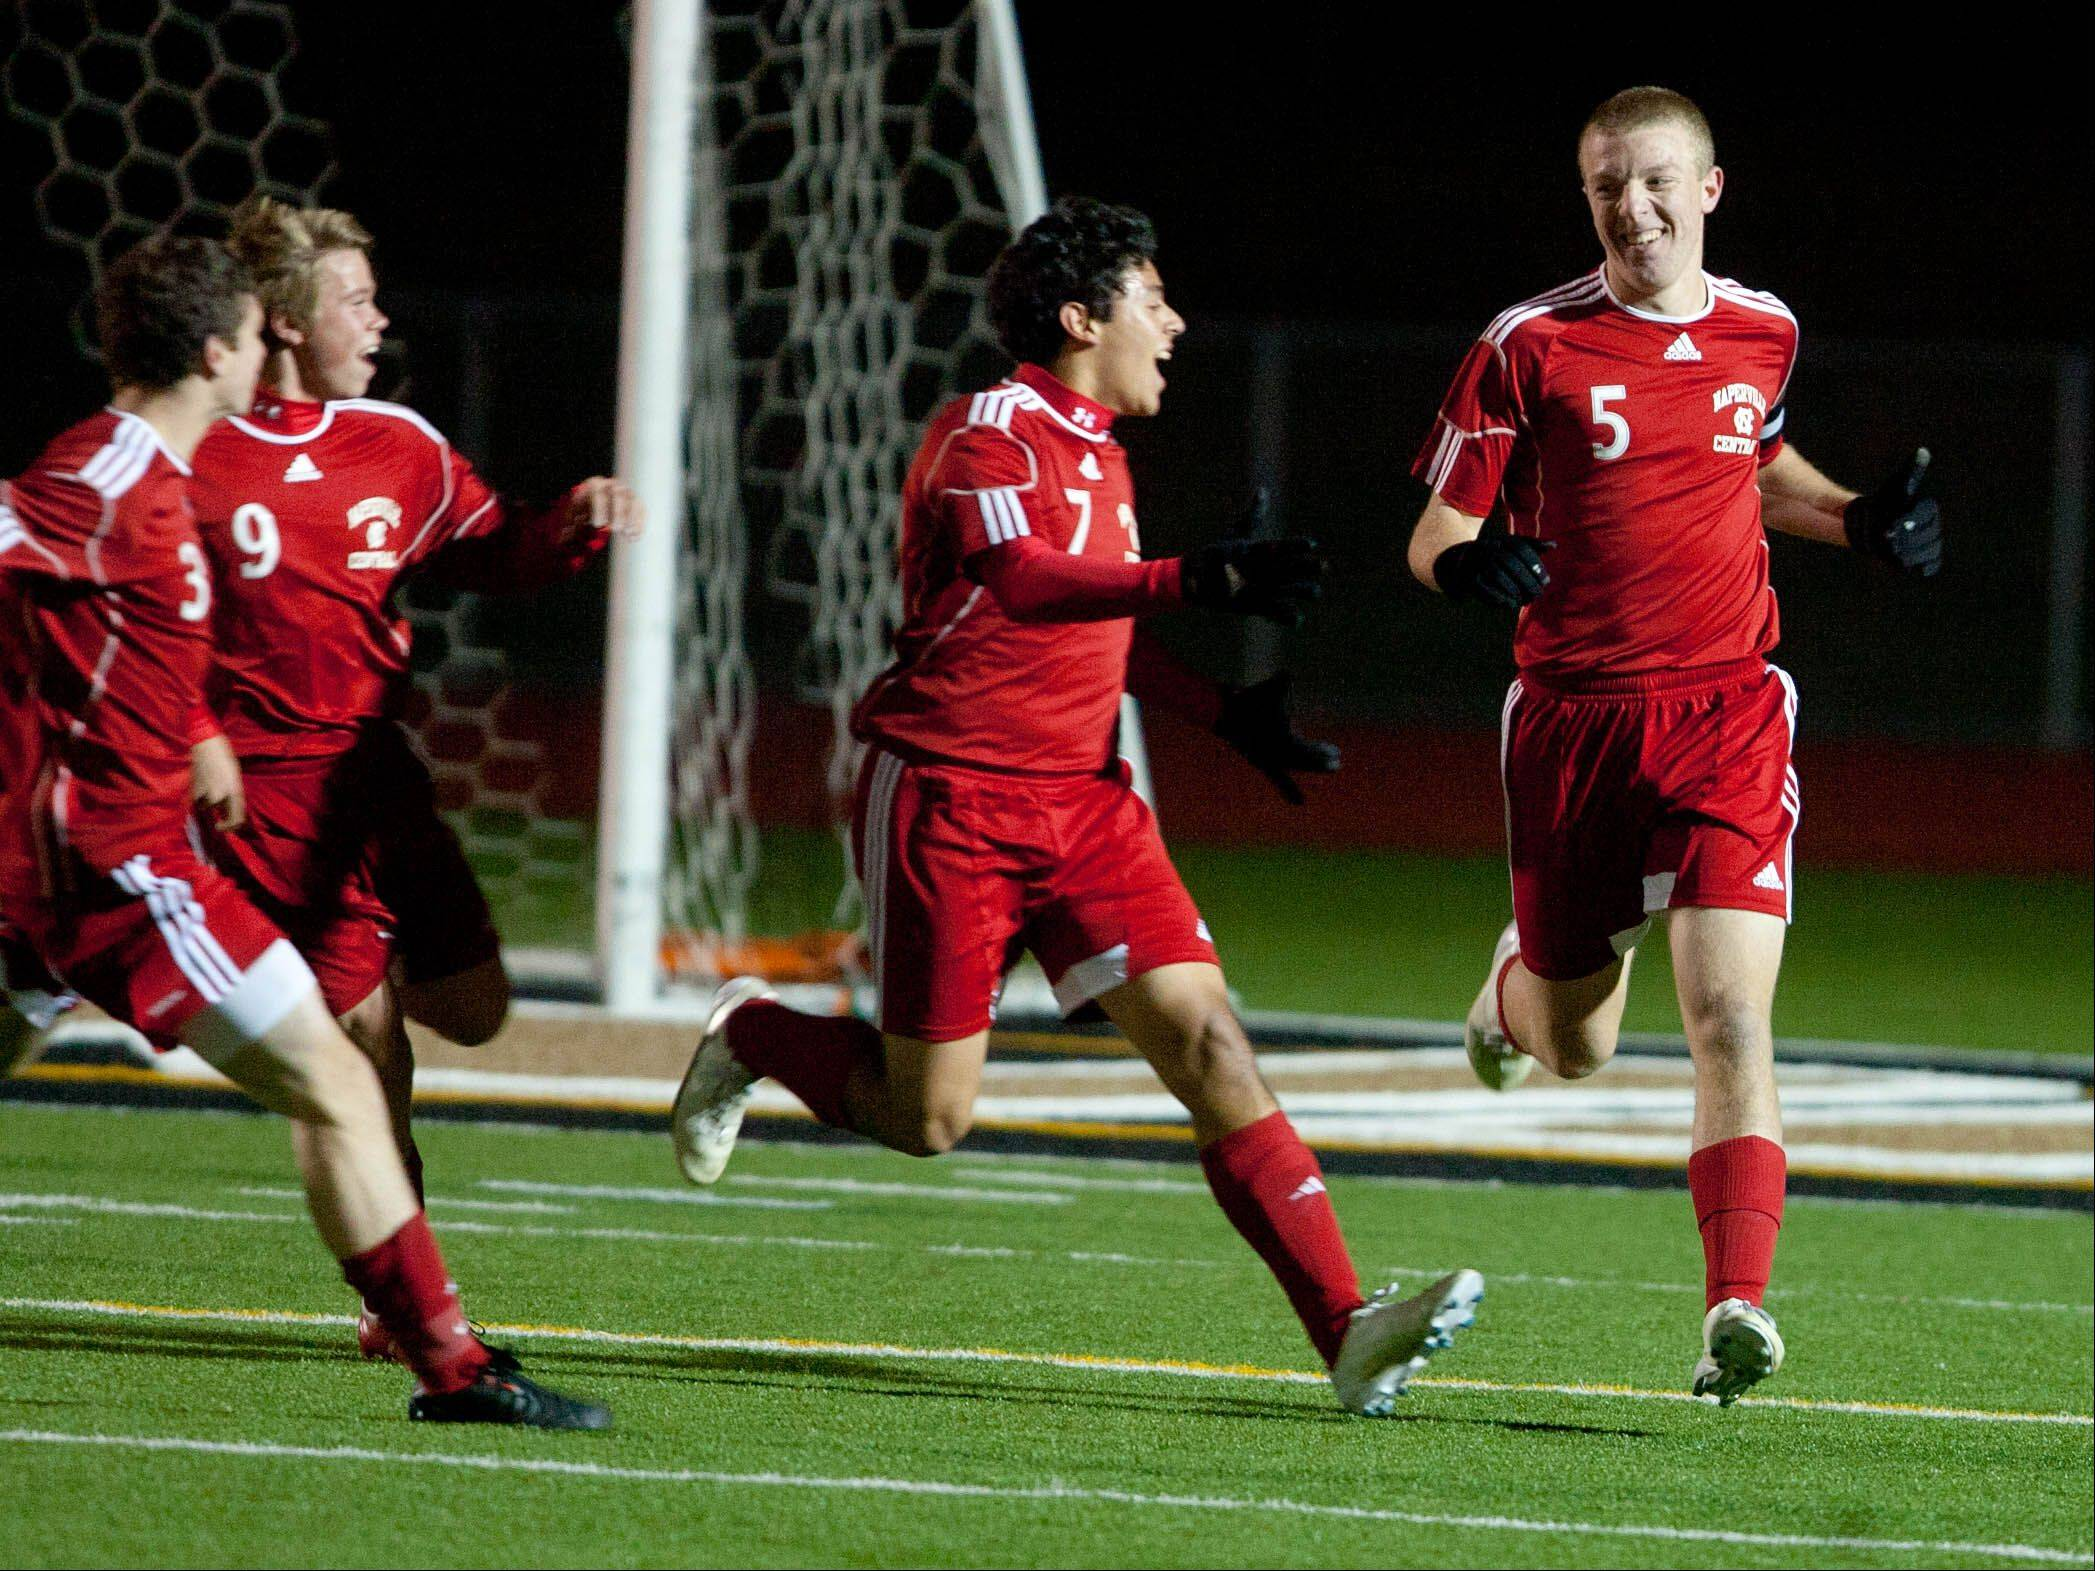 Naperville Central's Pat Flynn, (5), is congratulated by teammates Jay Tegge (3), Jordi Heeneman (9), and Sam Reskala (7), after scoring the first goal against Stevenson, during the boys 3A state semifinal soccer match held at Lincoln-Way North High School.